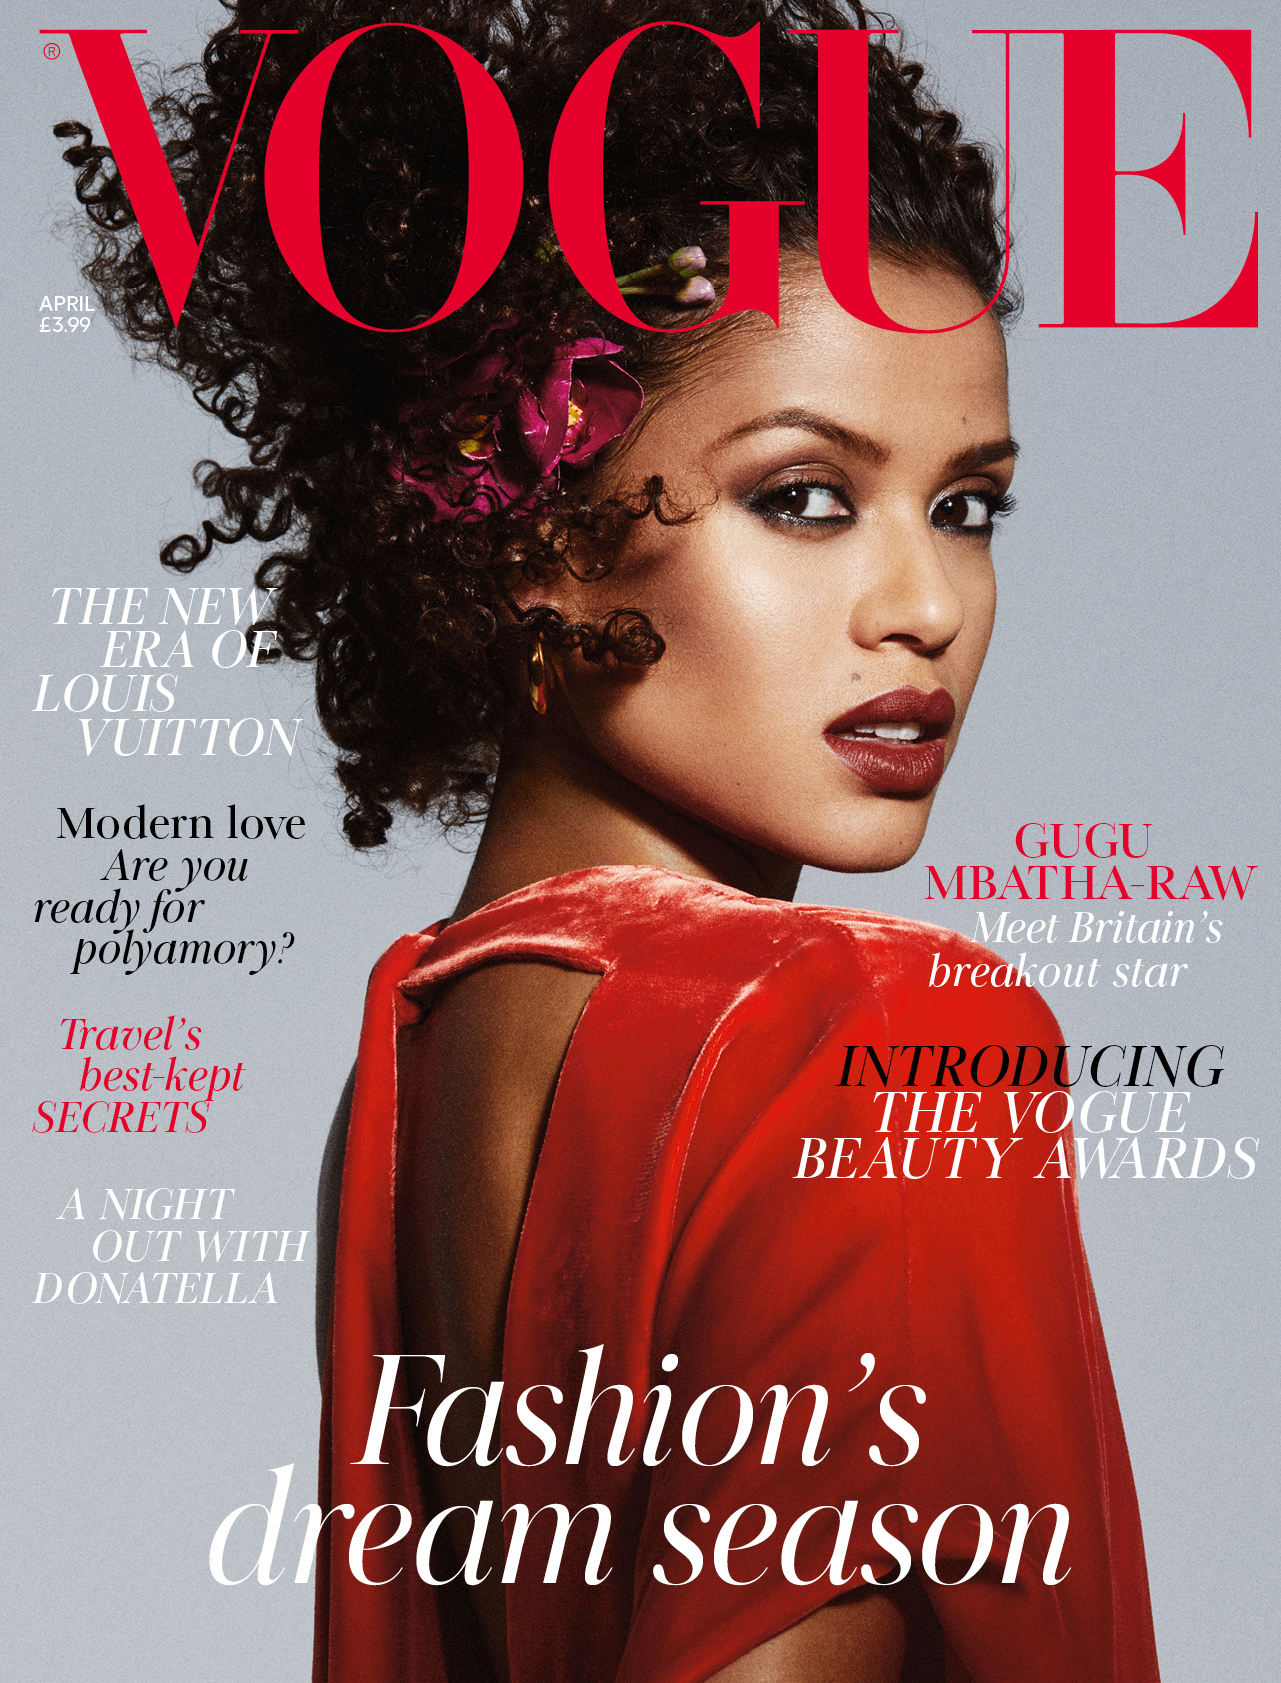 Vogue's April edition, on sale on Friday. Pic by vogue.co.uk